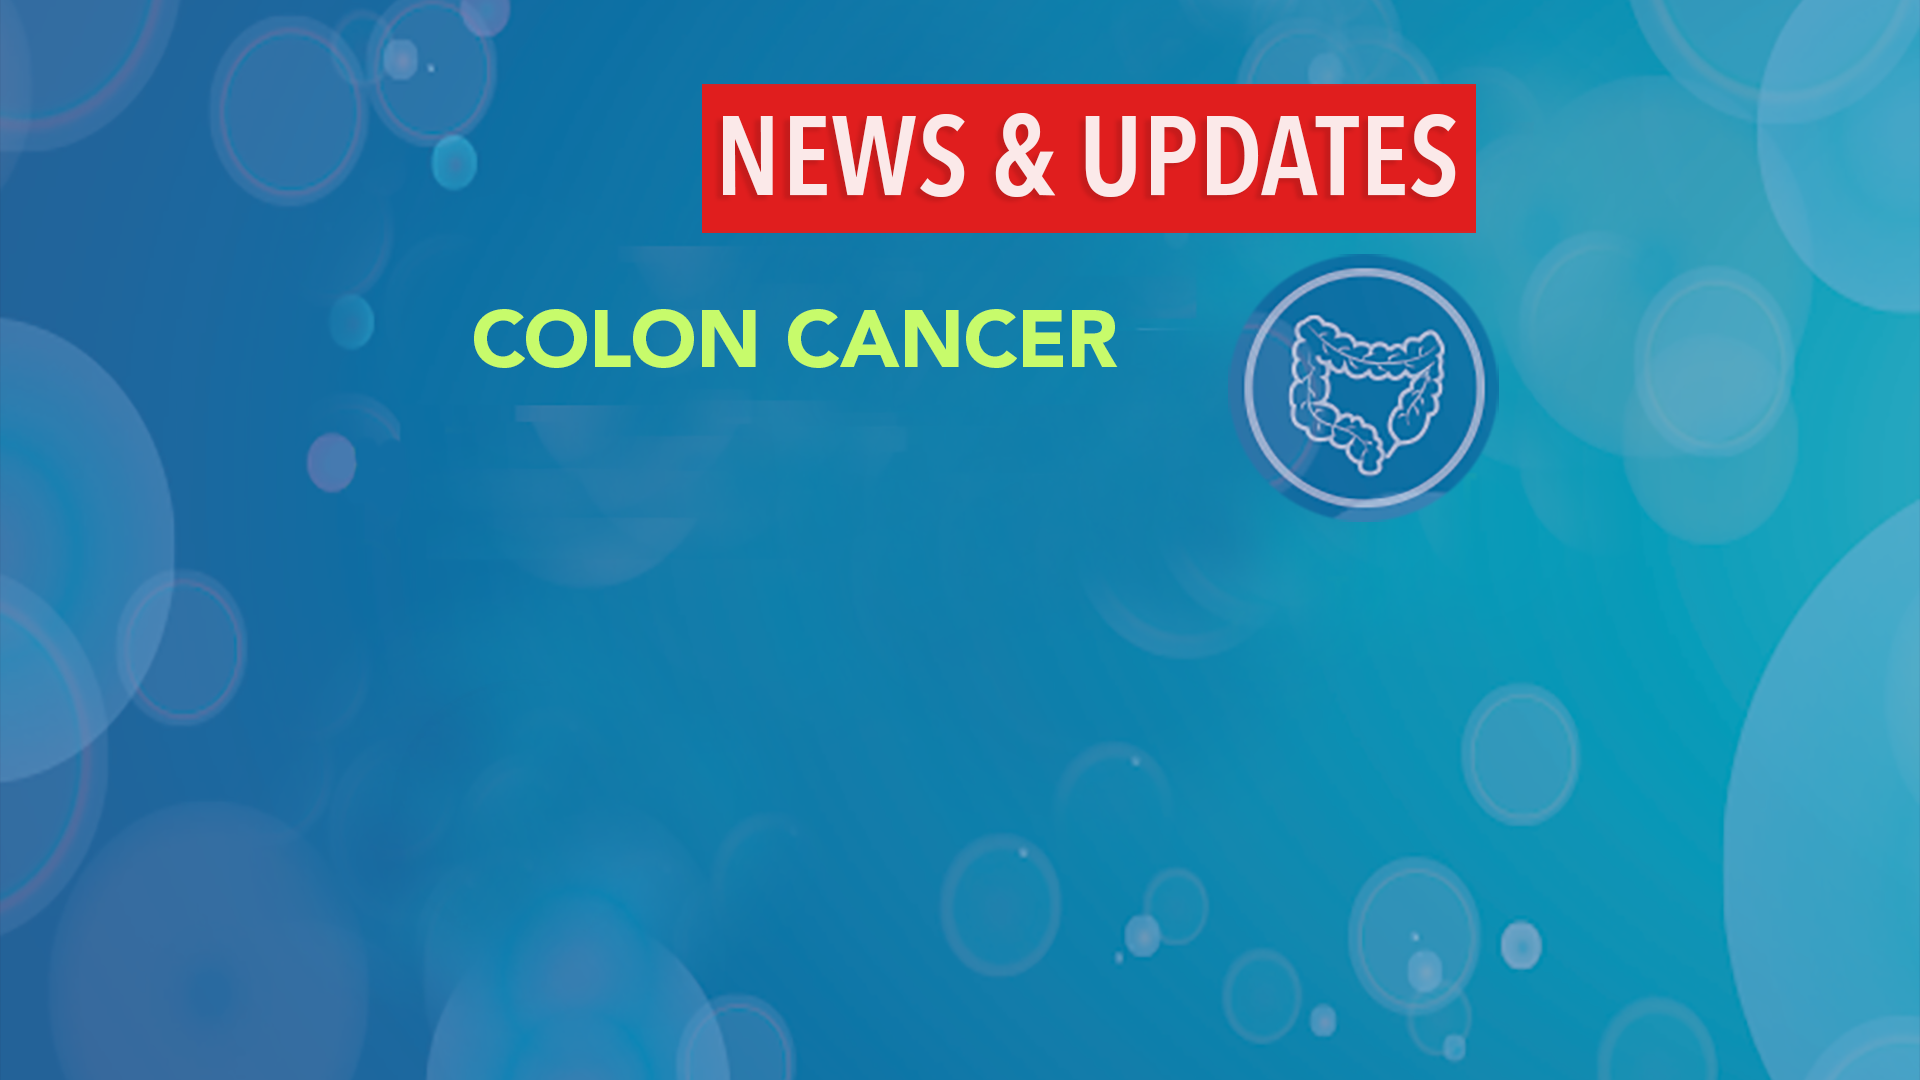 Adjuvant Chemotherapy Decreases Recurrences In Stage Ii Colorectal Cancer